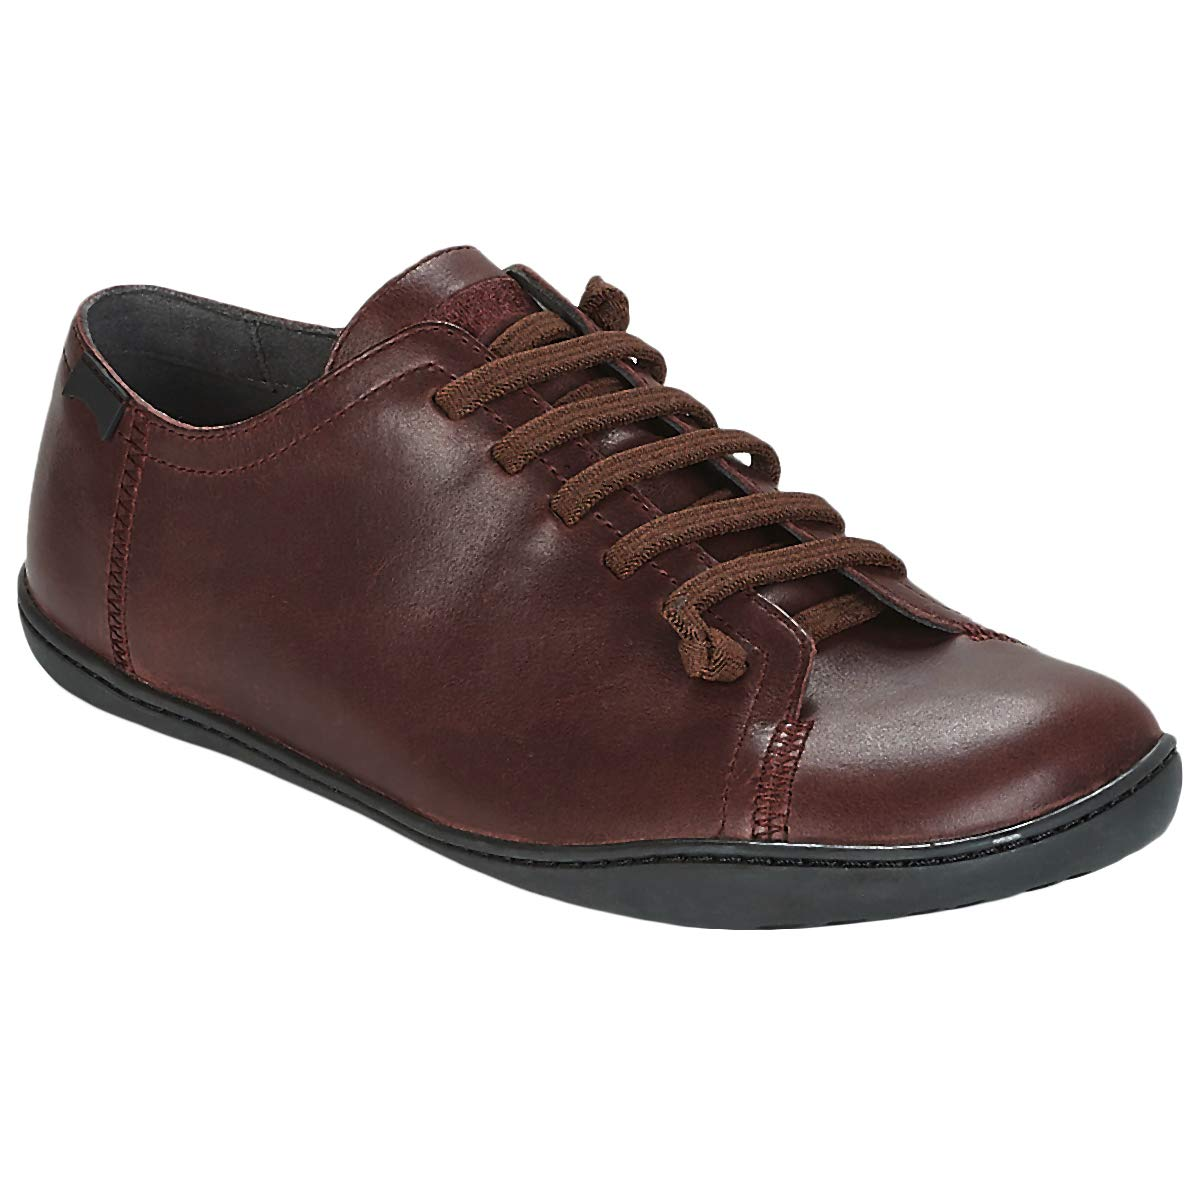 Burgundy Camper Mens Peu Cami Leather shoes